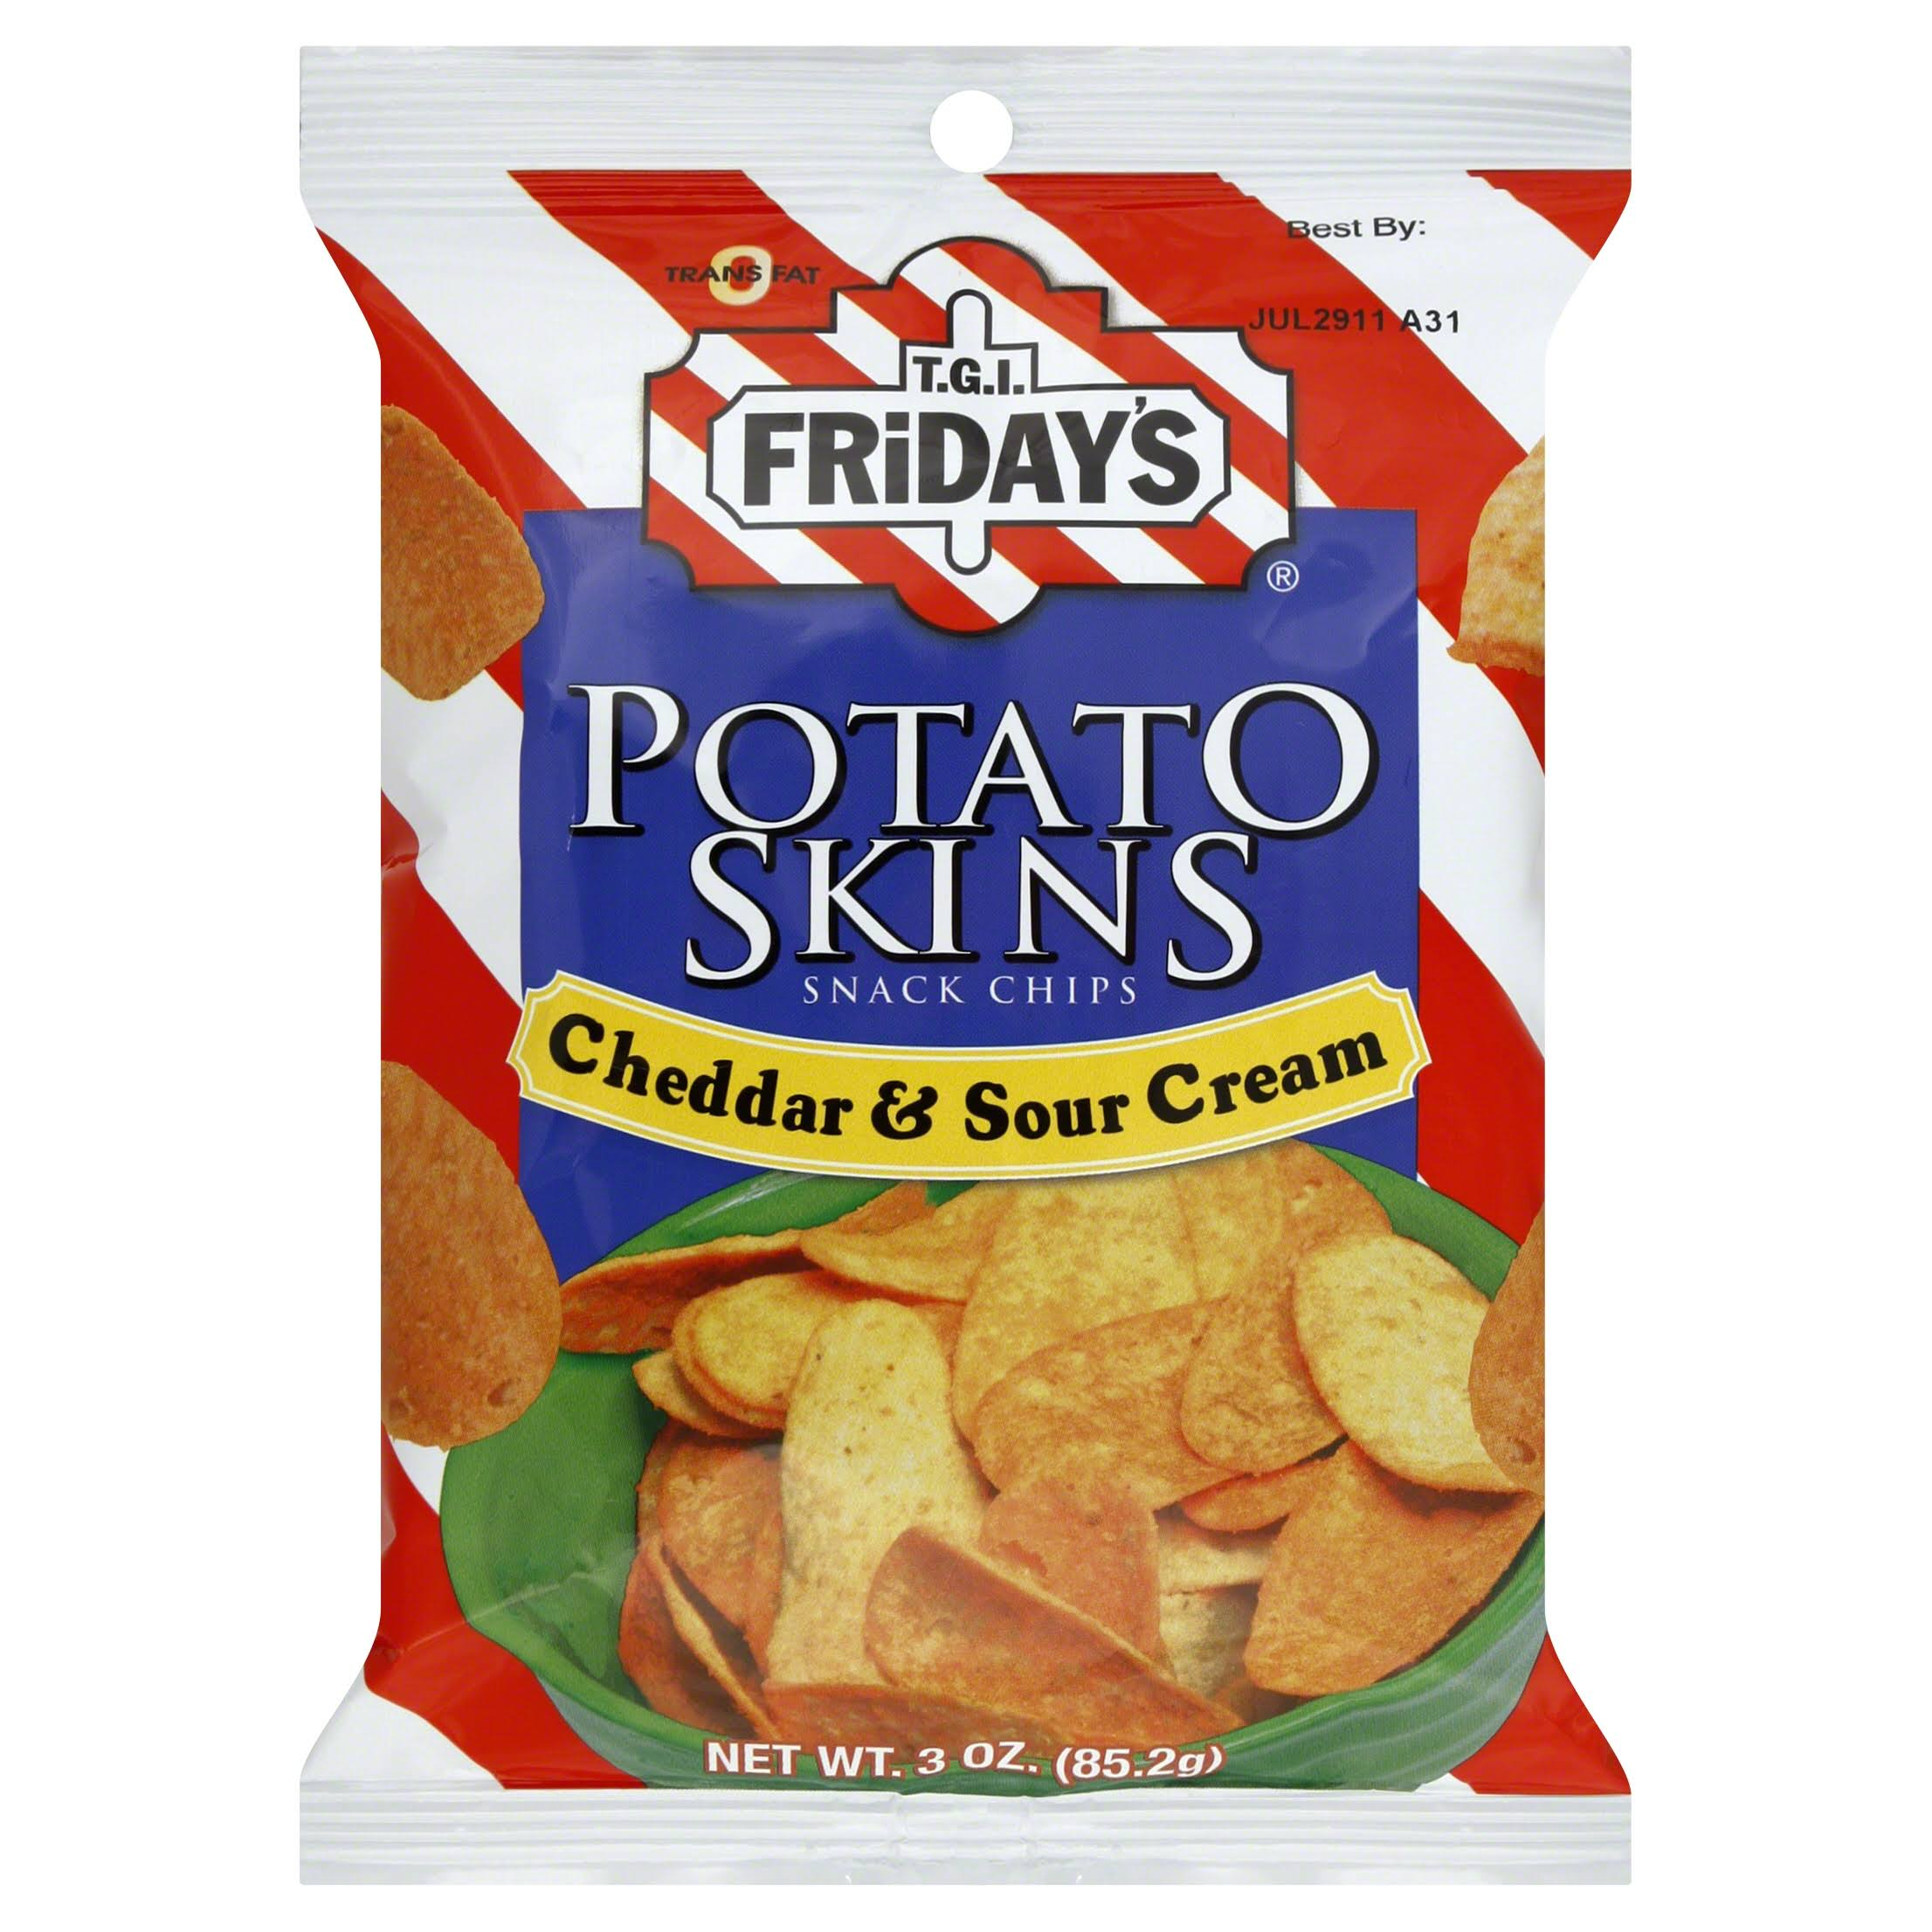 TGI Fridays Snack Chips, Potato Skins, Cheddar & Sour Cream - 3 oz